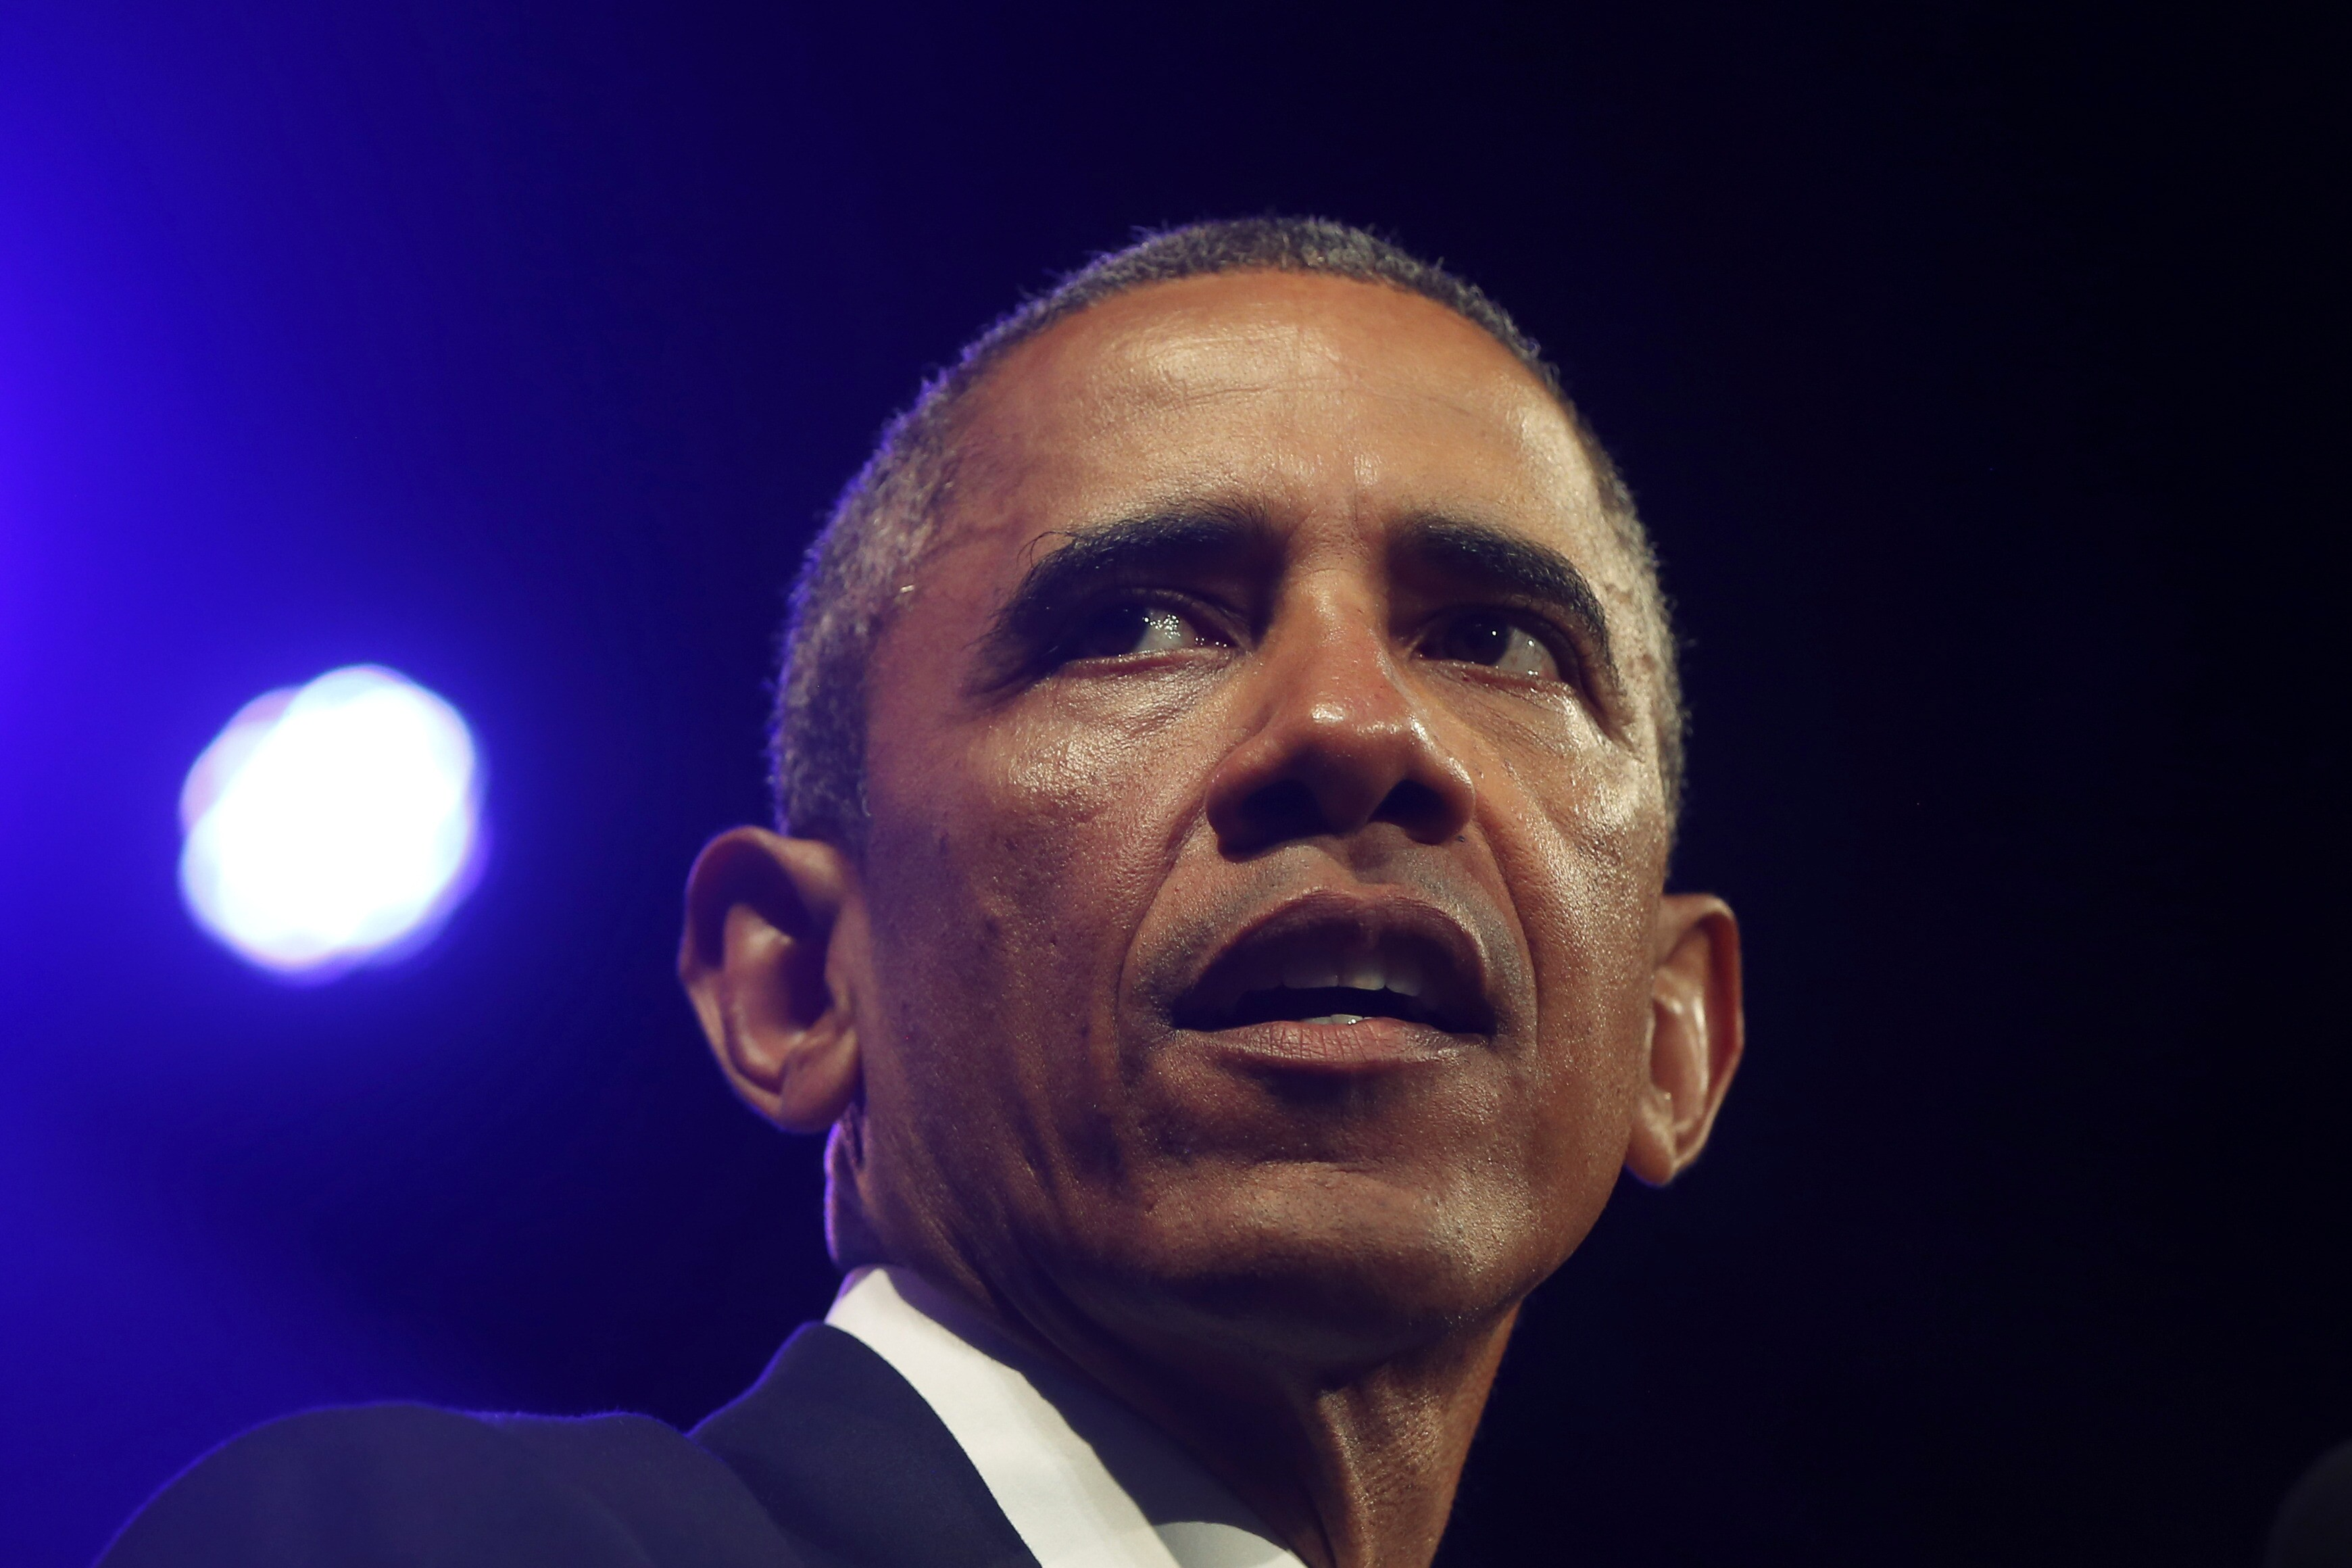 Obama's segue from constructive tax proposals to low-grade demagoguery